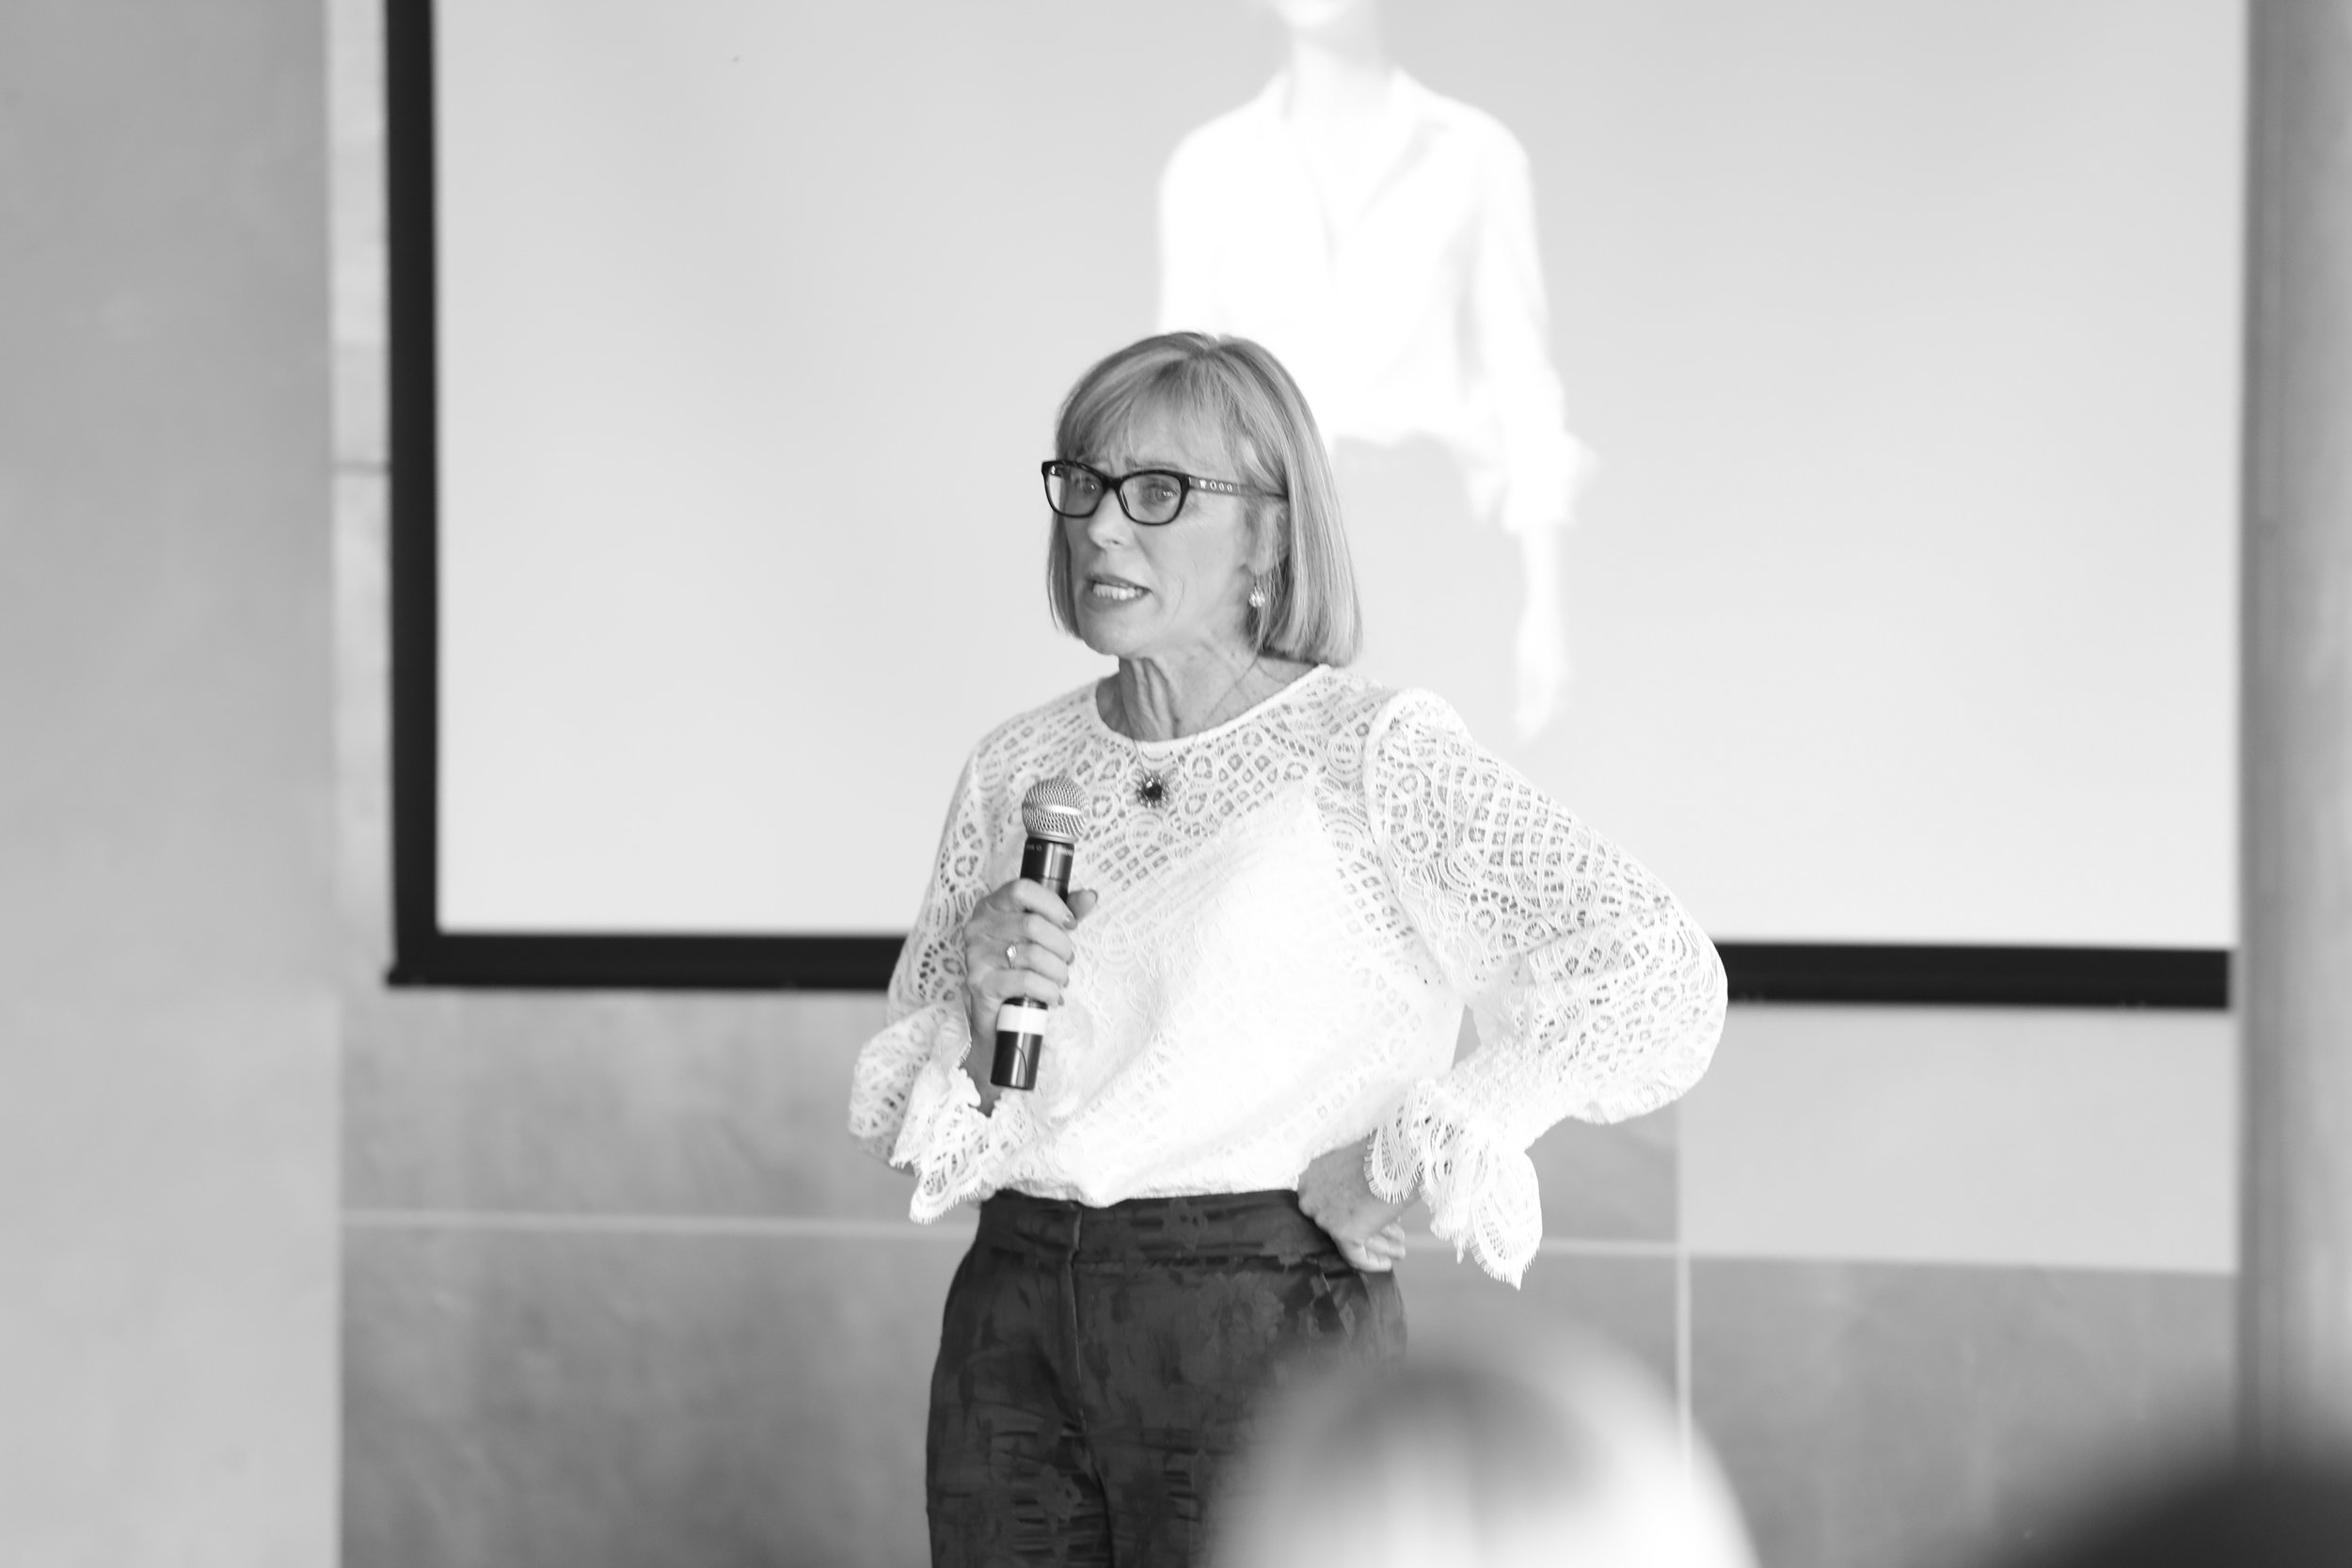 kate-and-co-projects-witchery-ocrf-white-shirt-campaign-2018-lucinda-nolan-ocrf-ceo.jpg